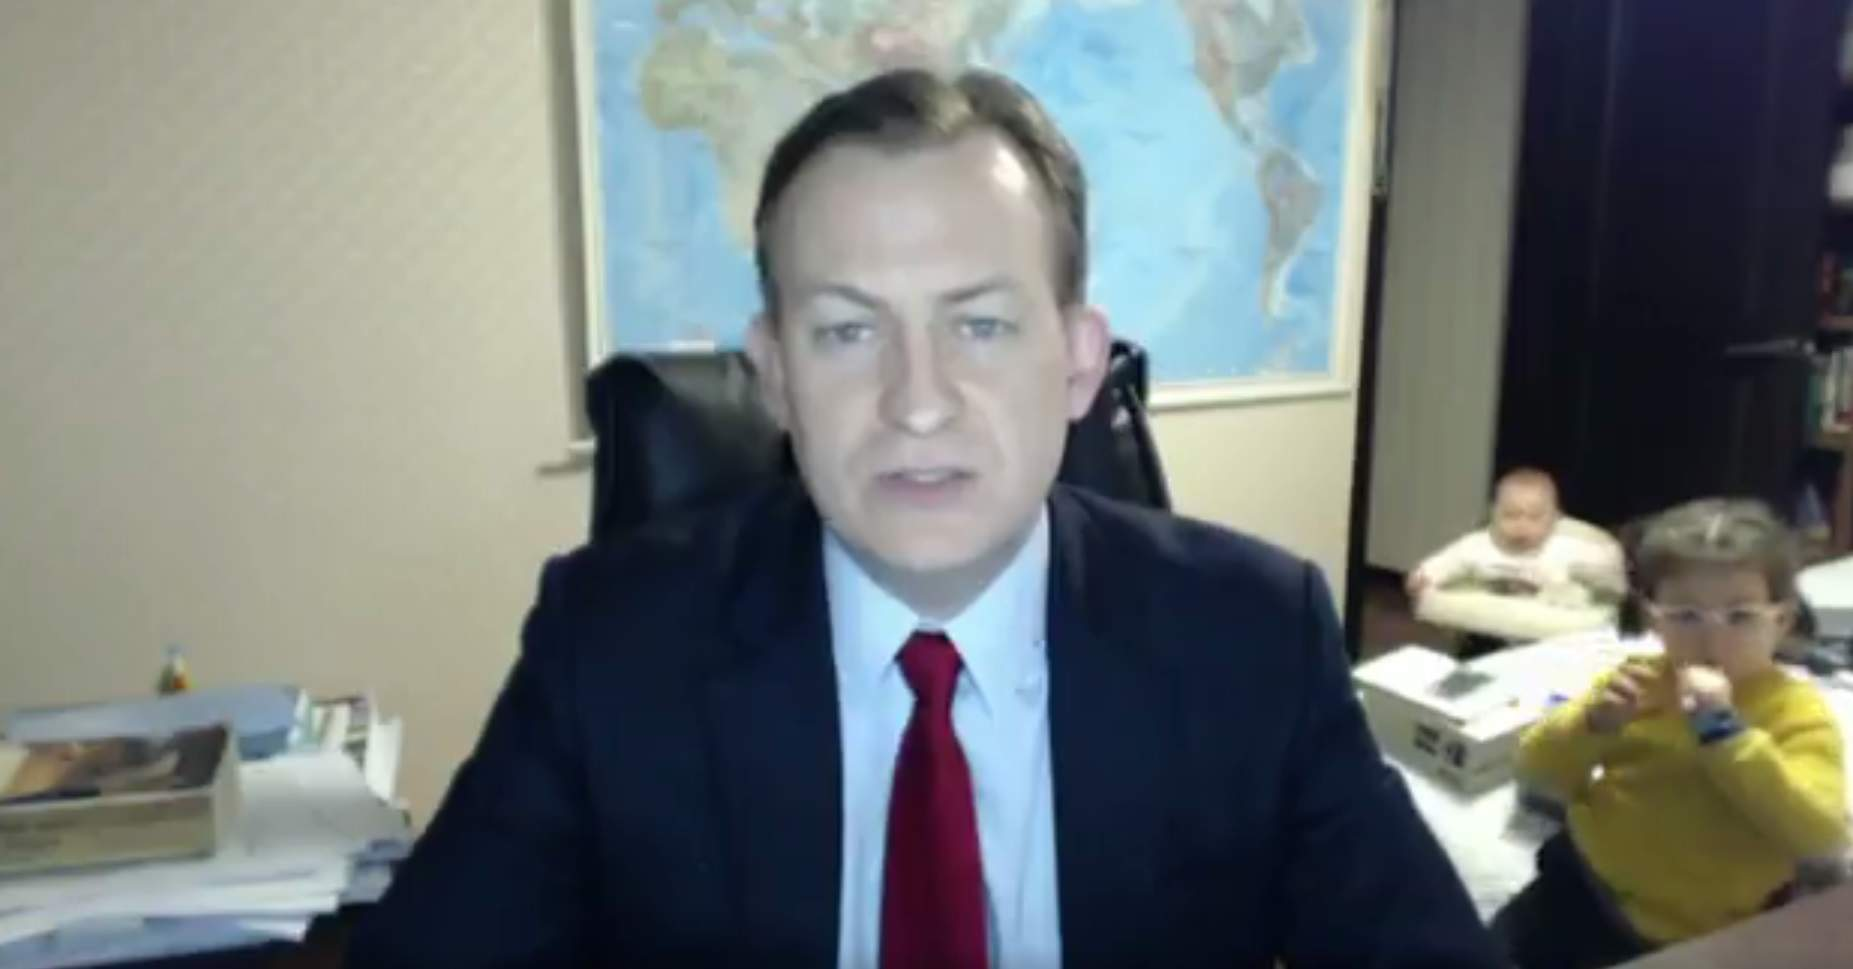 The BBC pundit's children video is NOT FUNNY. It's patriarchy in a nutshell